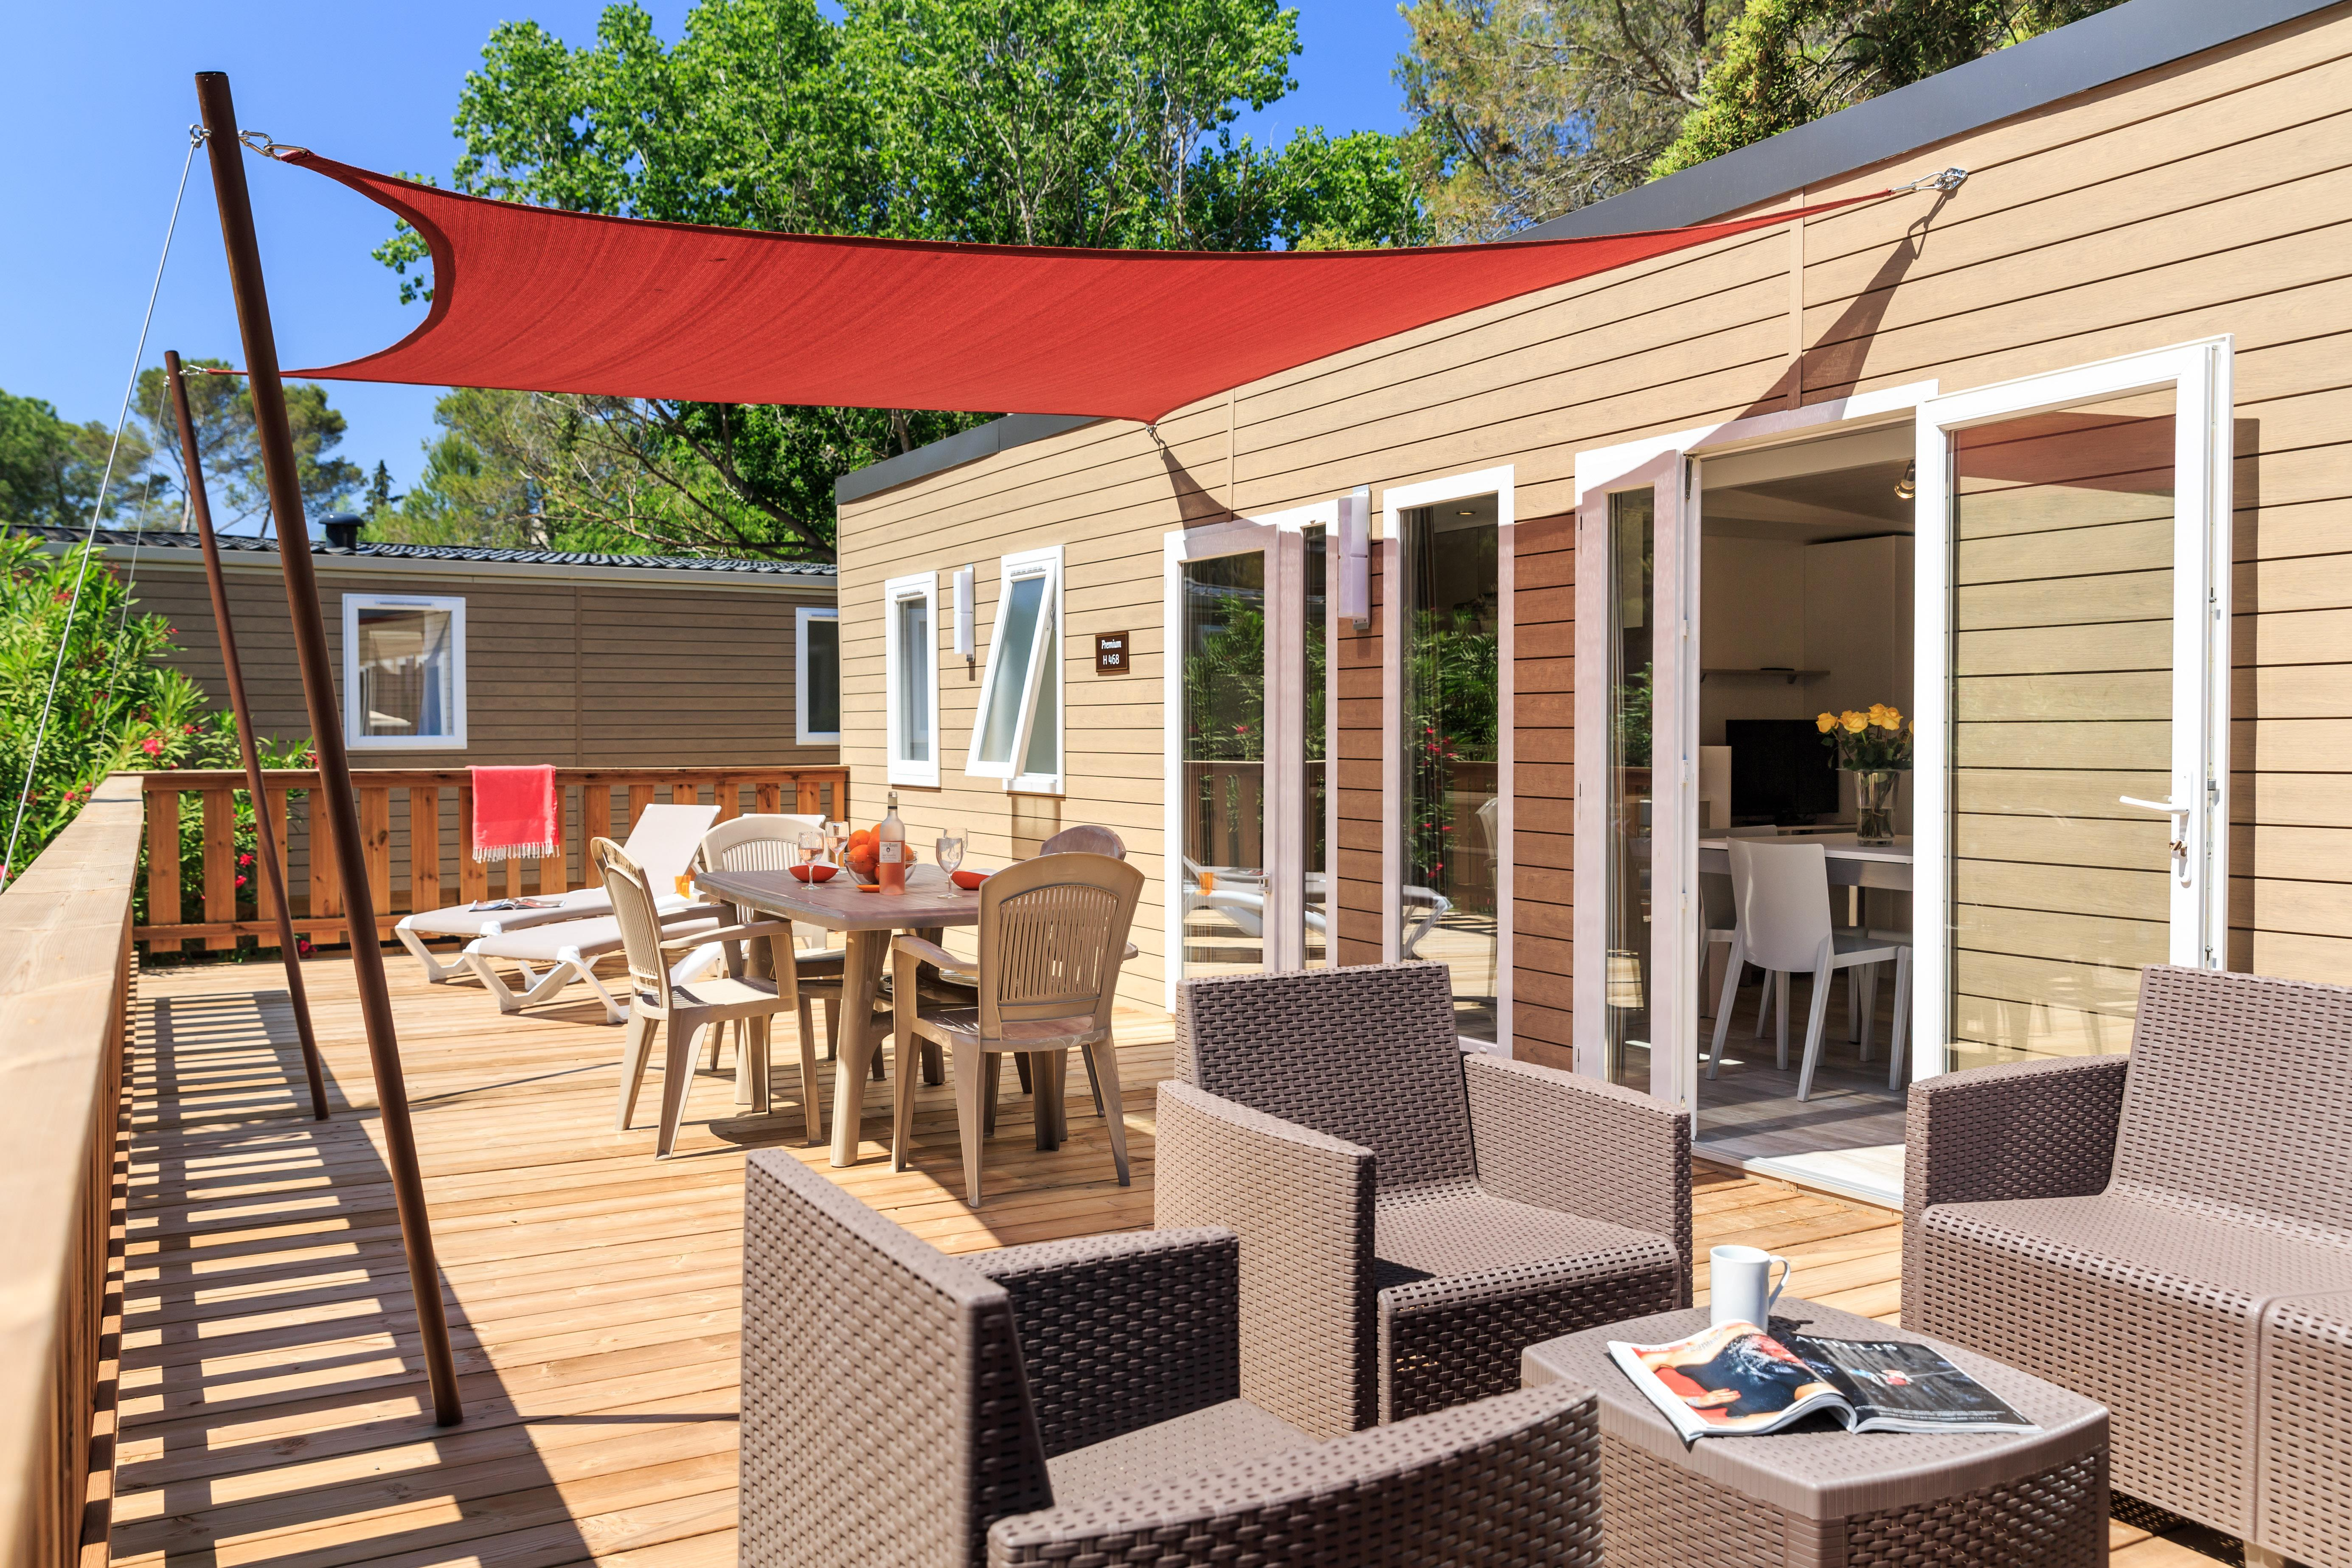 Location - Cottage Premium Luxe 40 M² - 3 Chambres + 2 Salles De Bains +  Clim Et Tv + Terrasse Panoramique - Camping Holiday Green